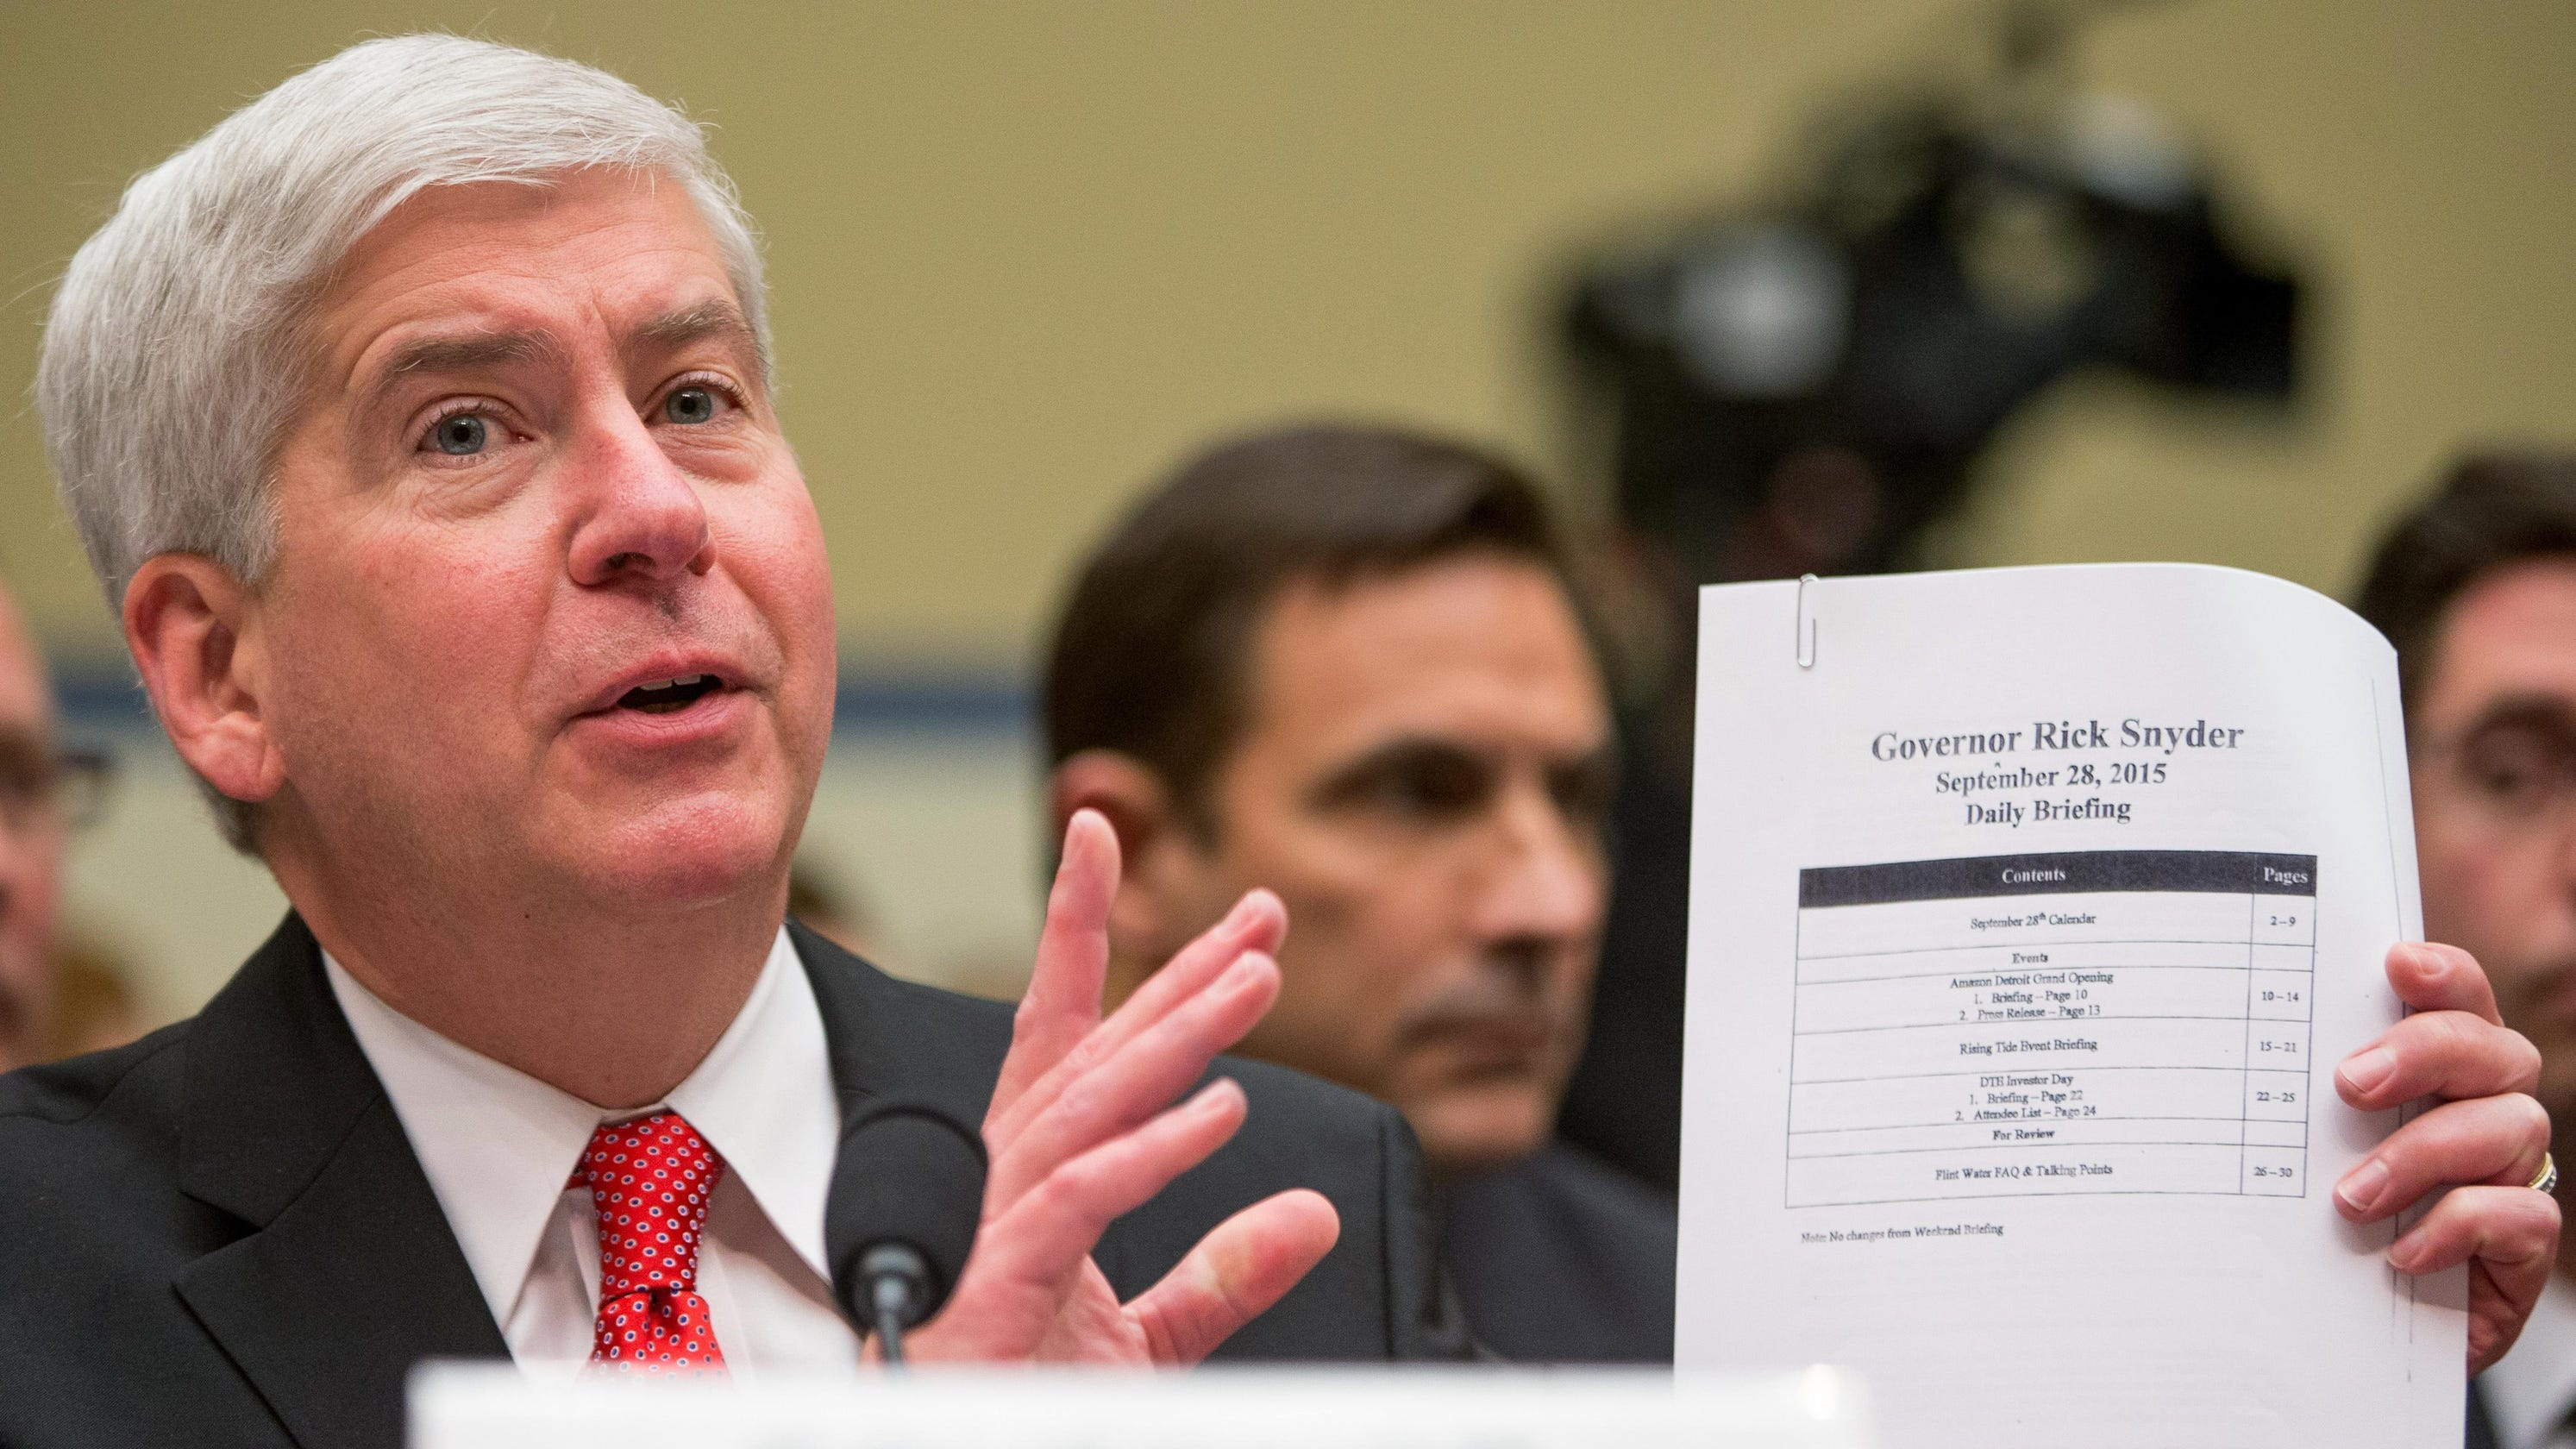 Finley: Rick Snyder becomes the mob's latest victim